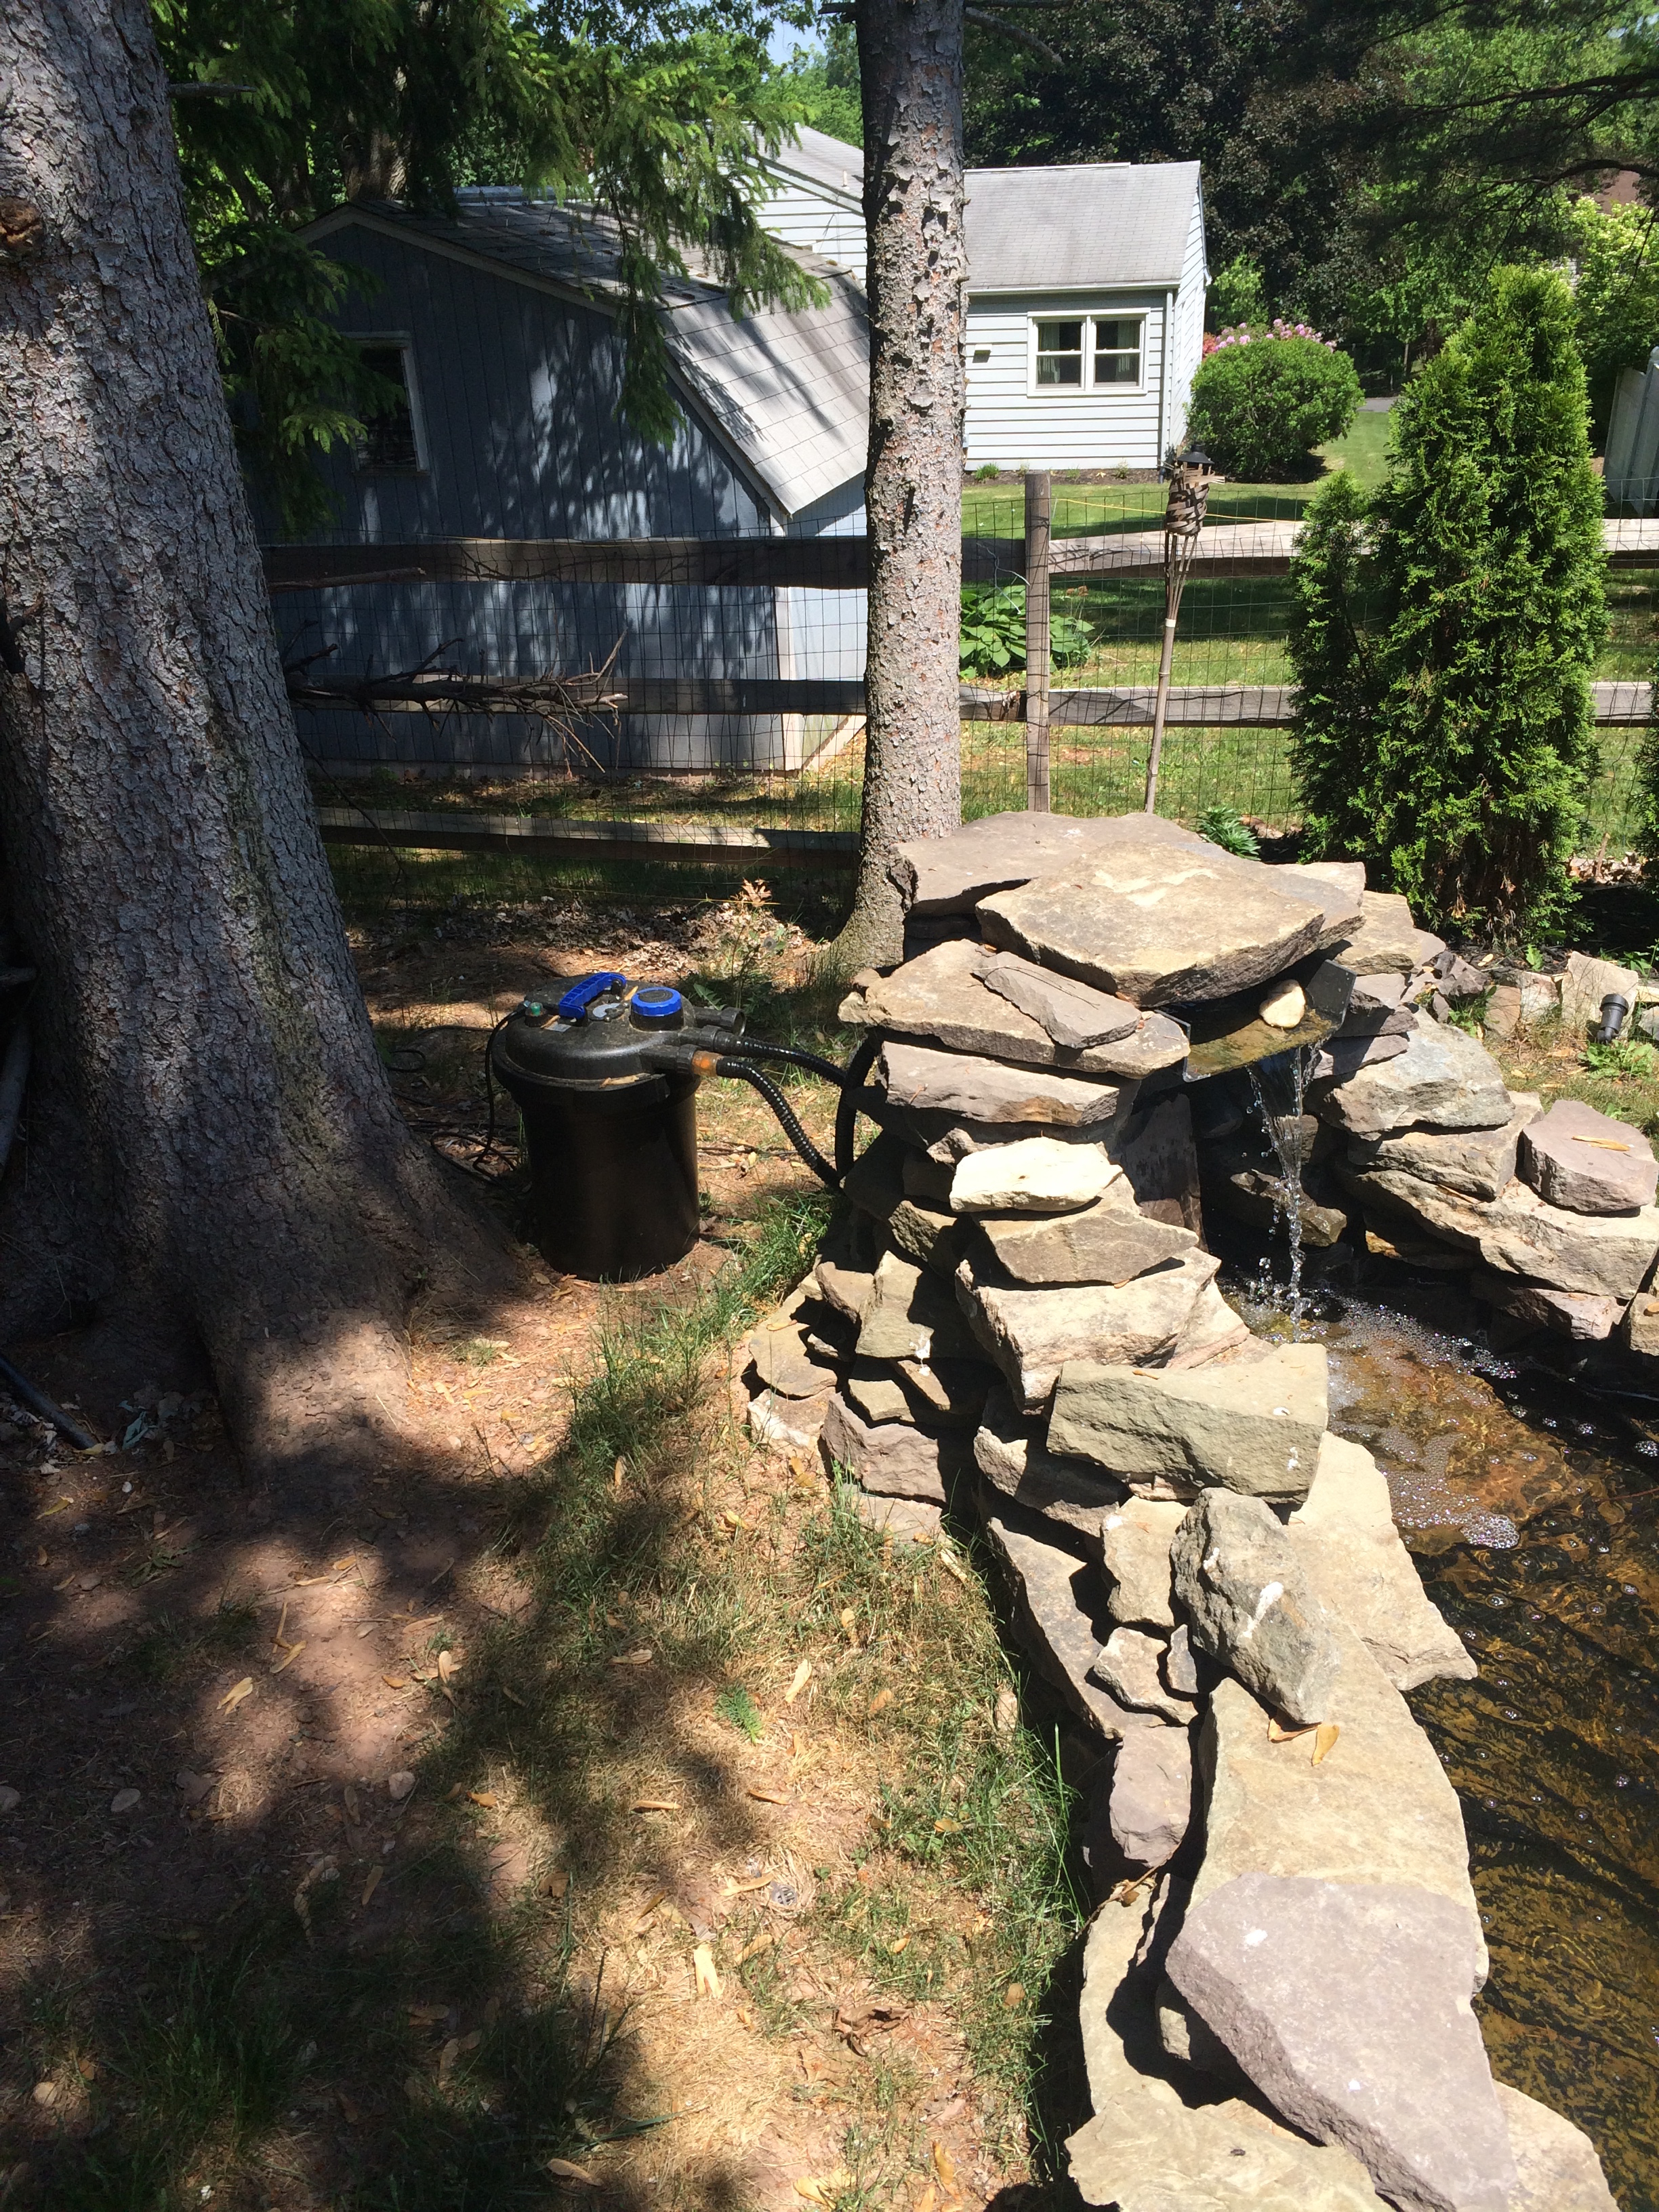 Pool and hot tub wiring collegeville and pottstown pa for Pond pump placement